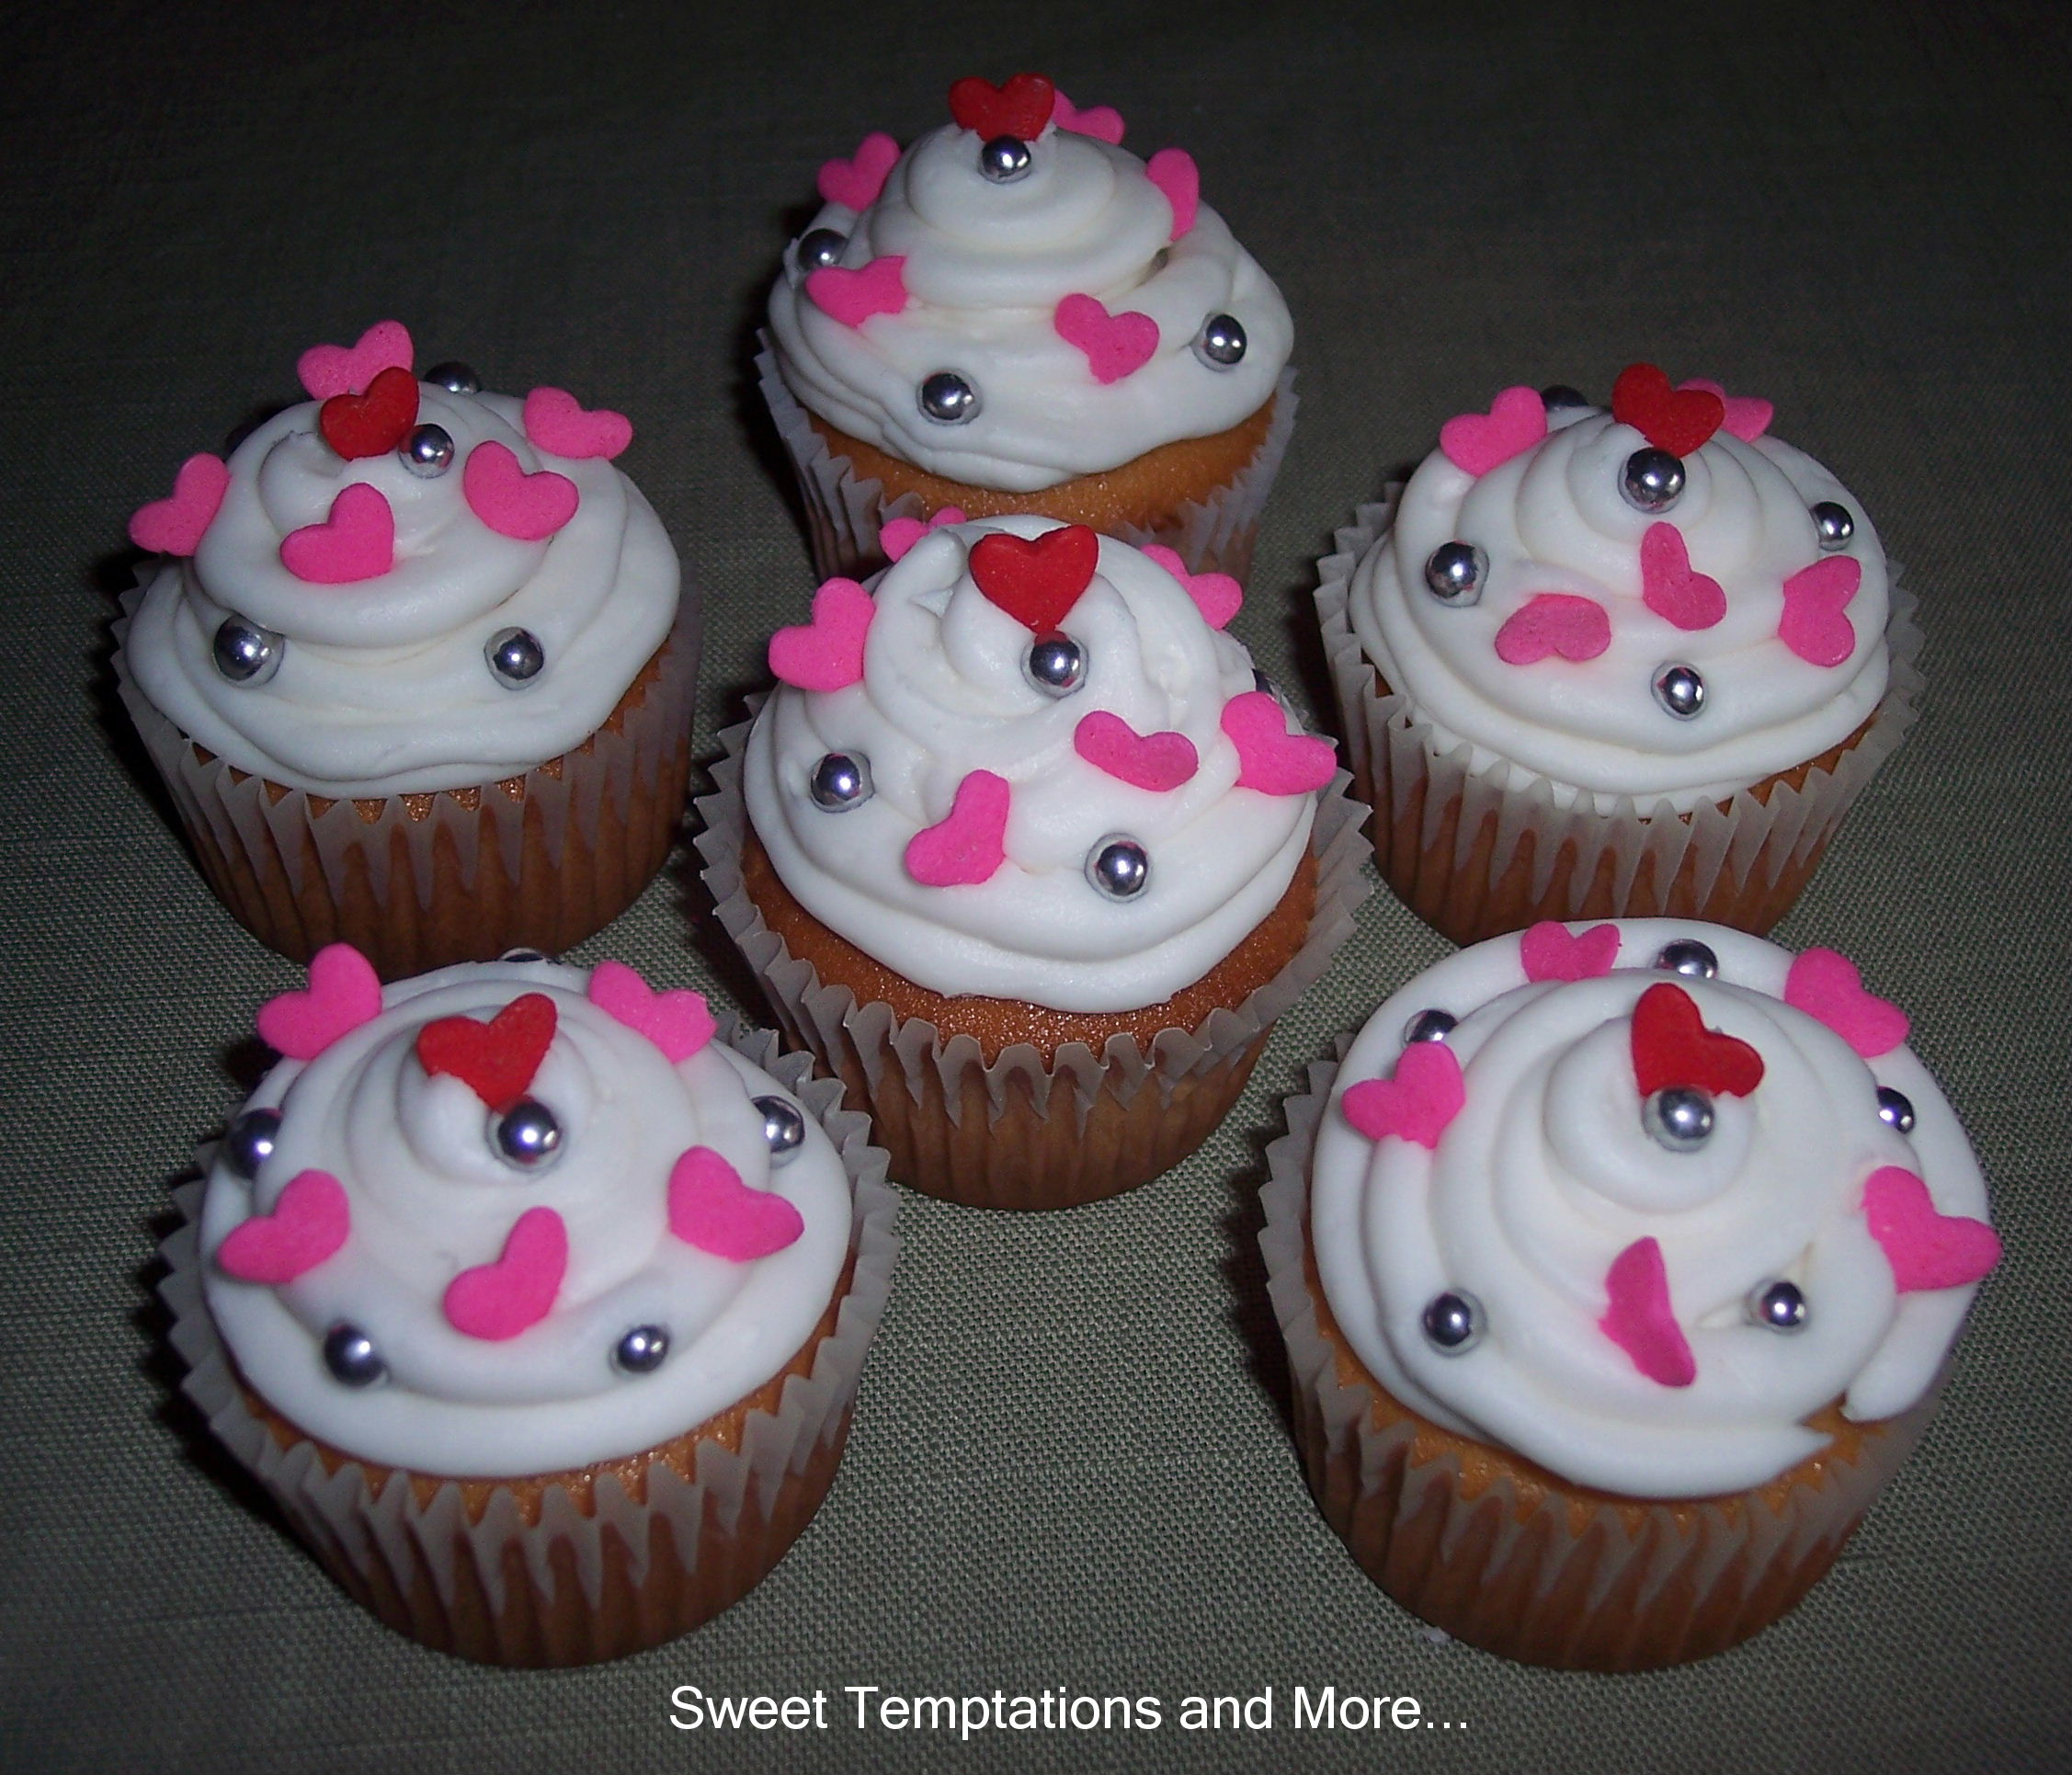 Sweet Temptations Cakes And Cupcakes